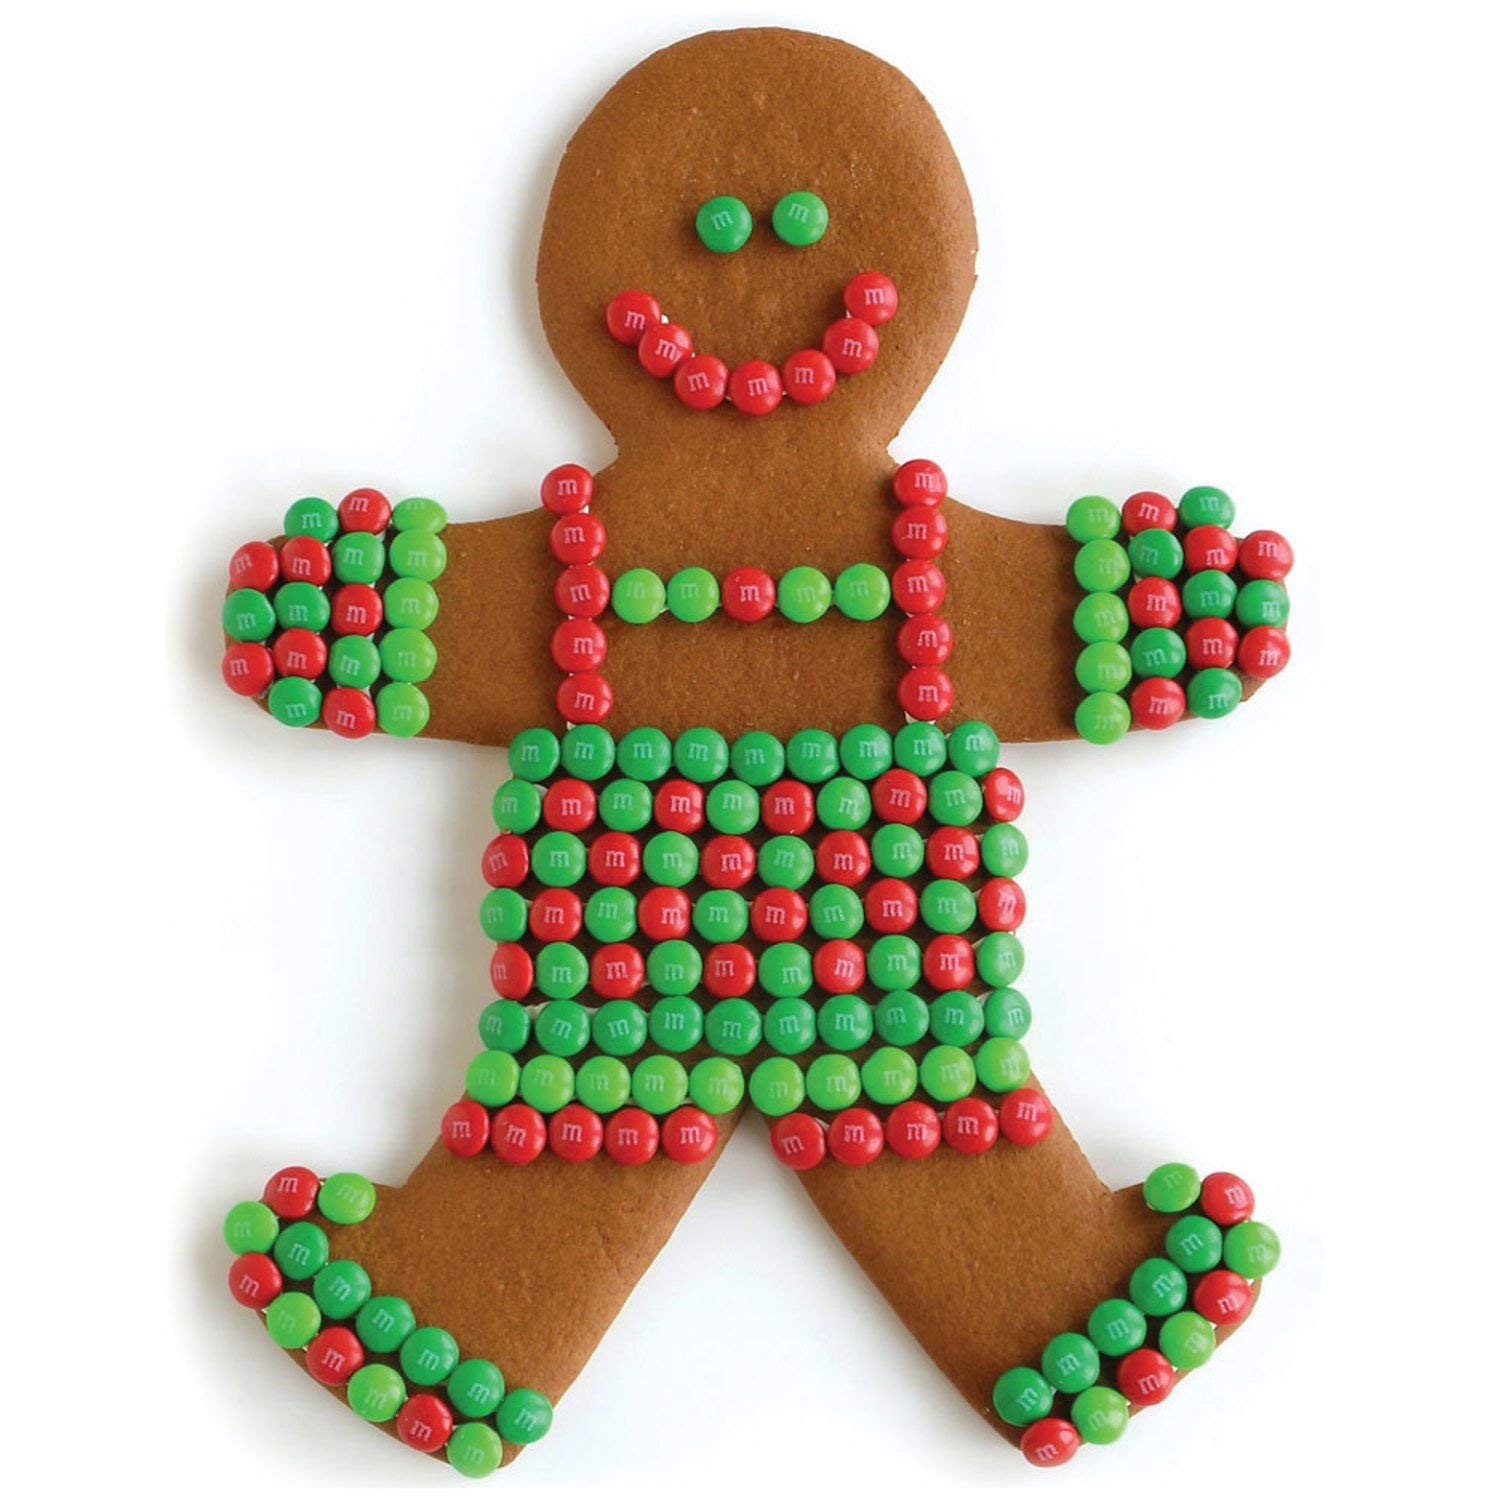 Sweet gingerbread people cookies decorated with red and green mini M&Ms for the holidays! #cookiedecorating #gingerbreadcookies #holidaybaking #christmascookies